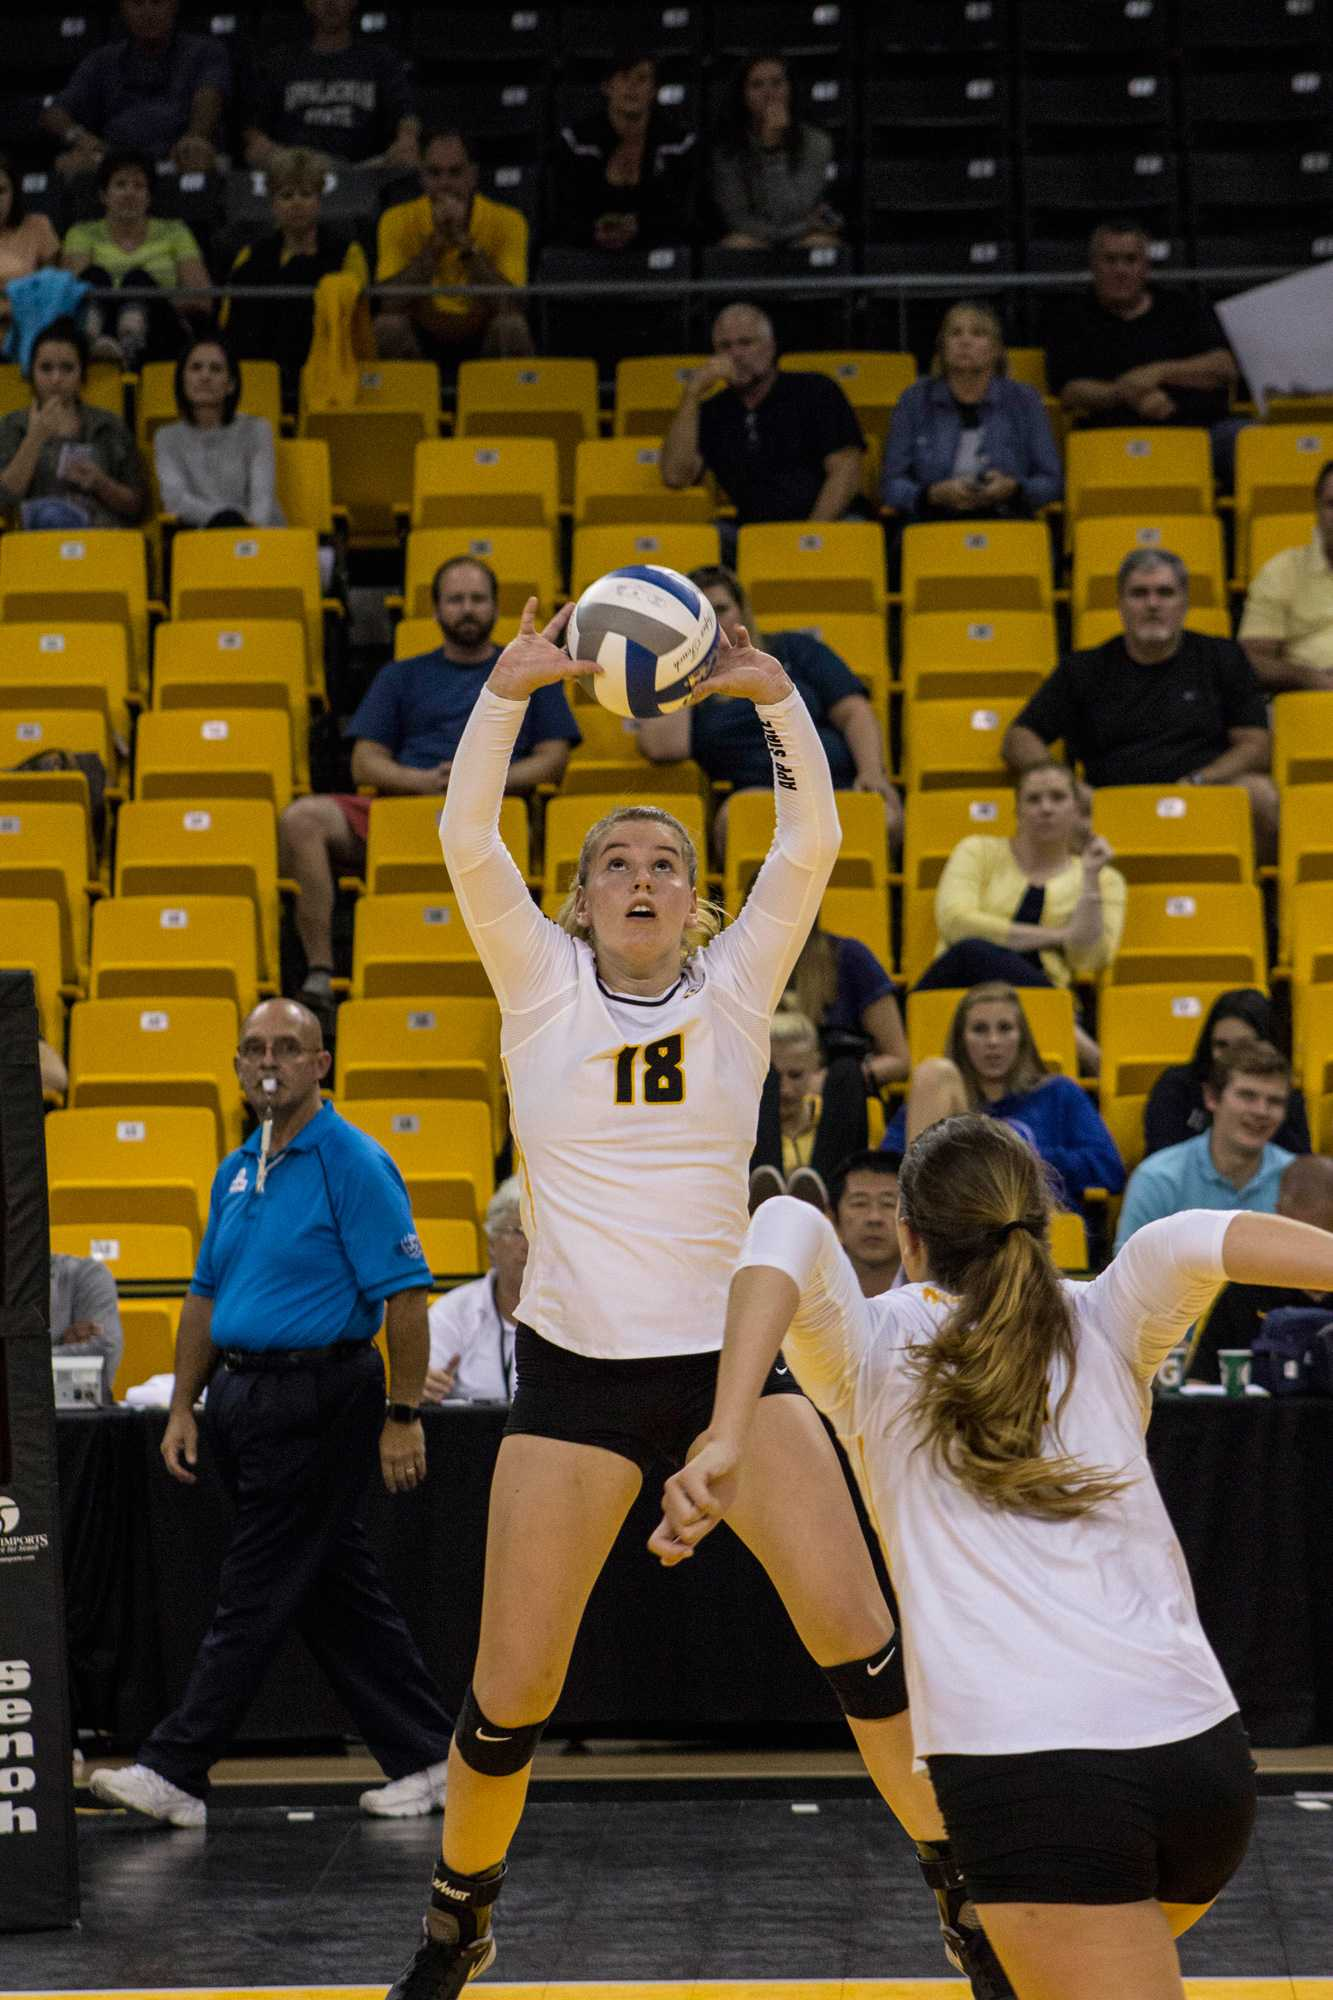 Freshman setter Amanda Krahl goes up for a pass in the game against Ohio Photo by Halle Keighton